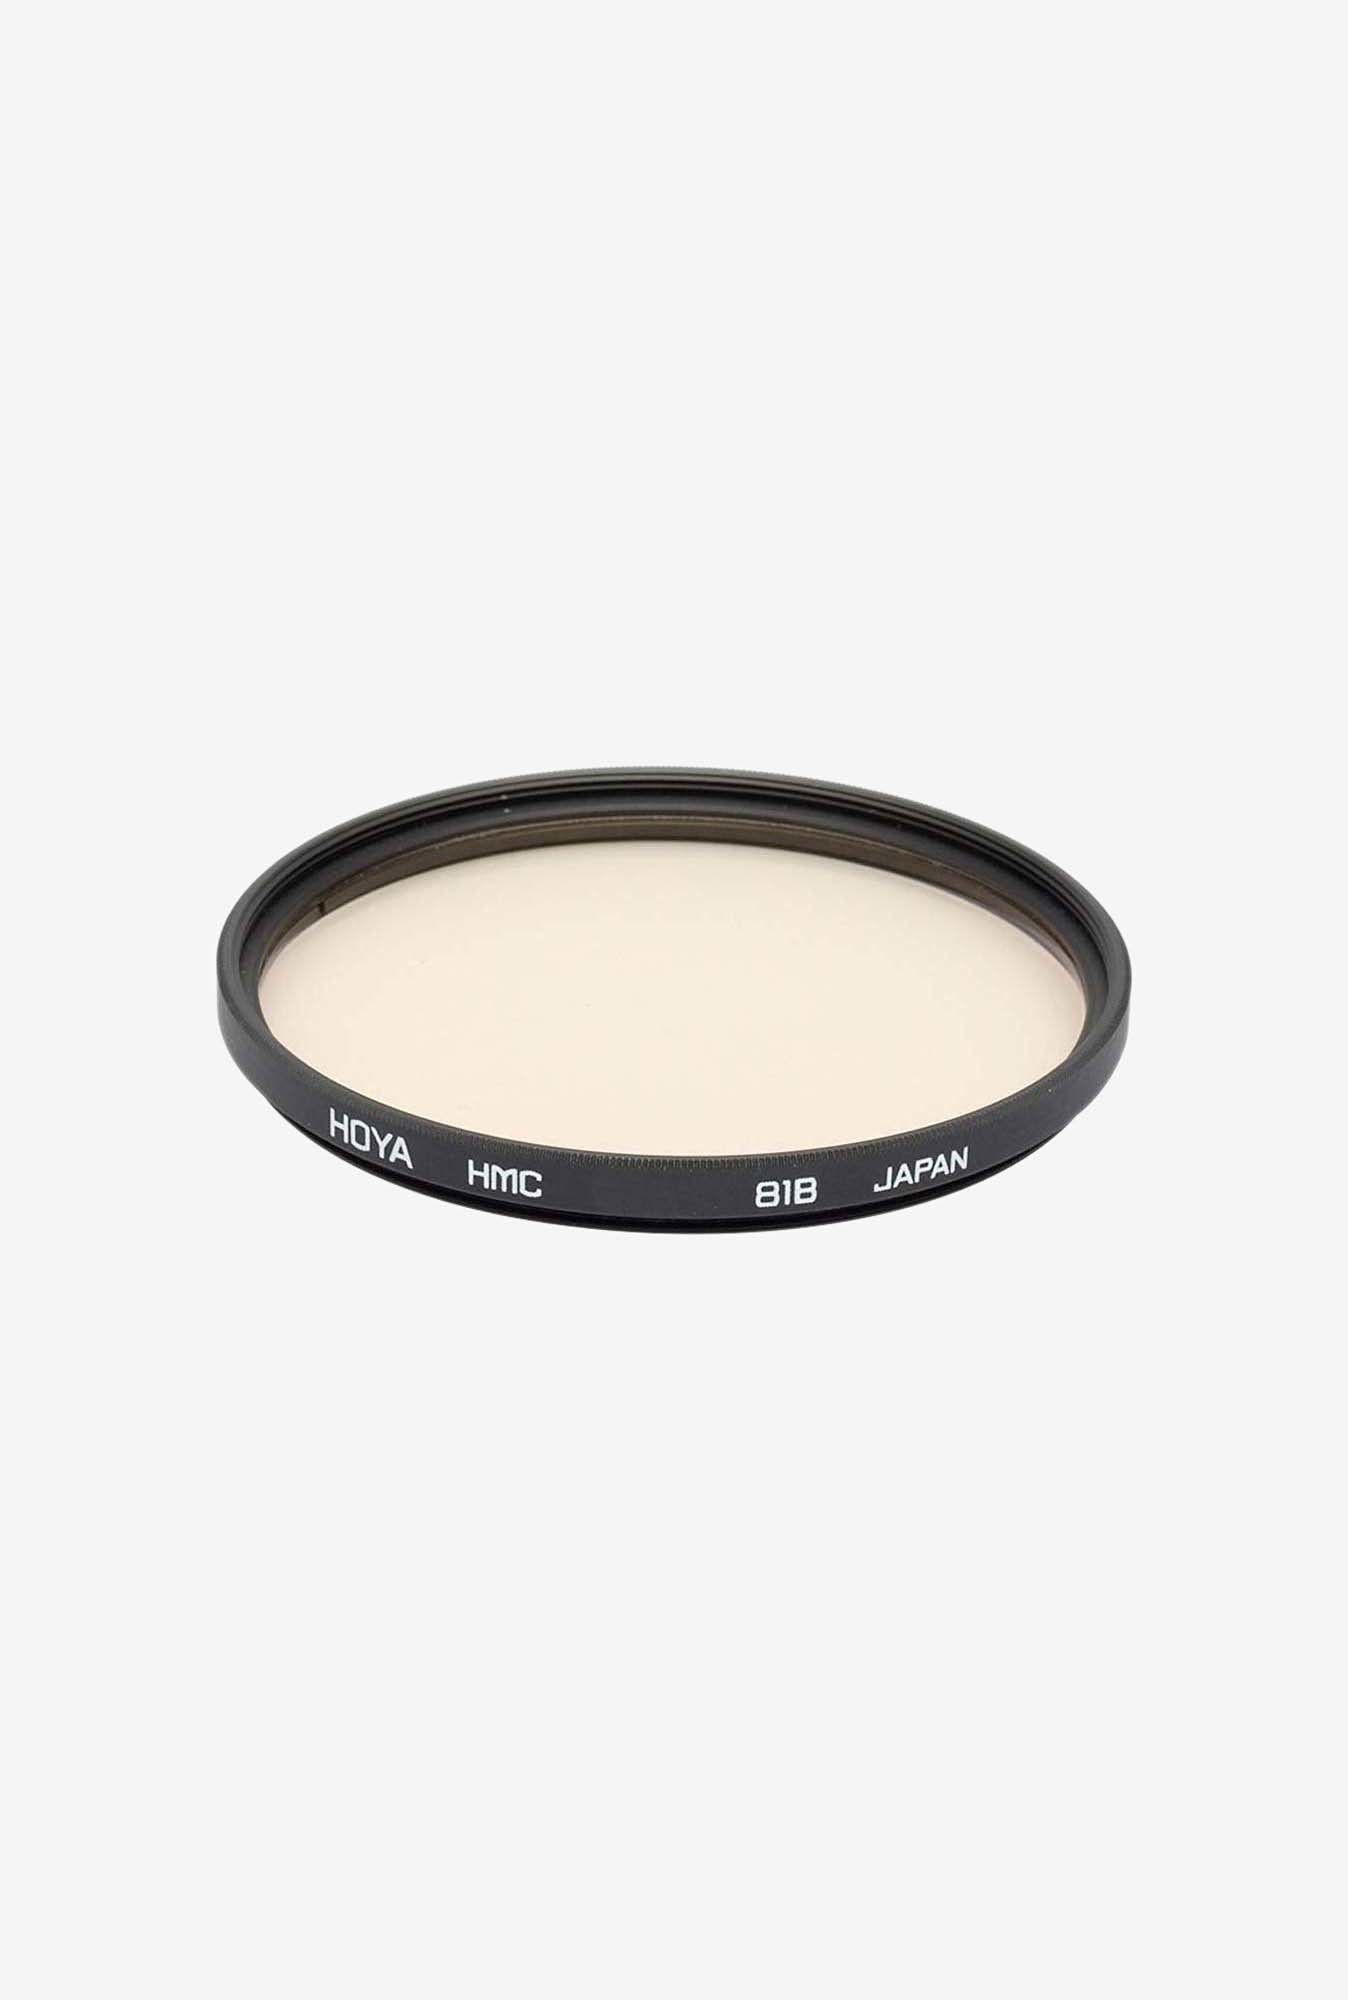 Hoya 81B Warming Multi Coated Glass Filter (Black)